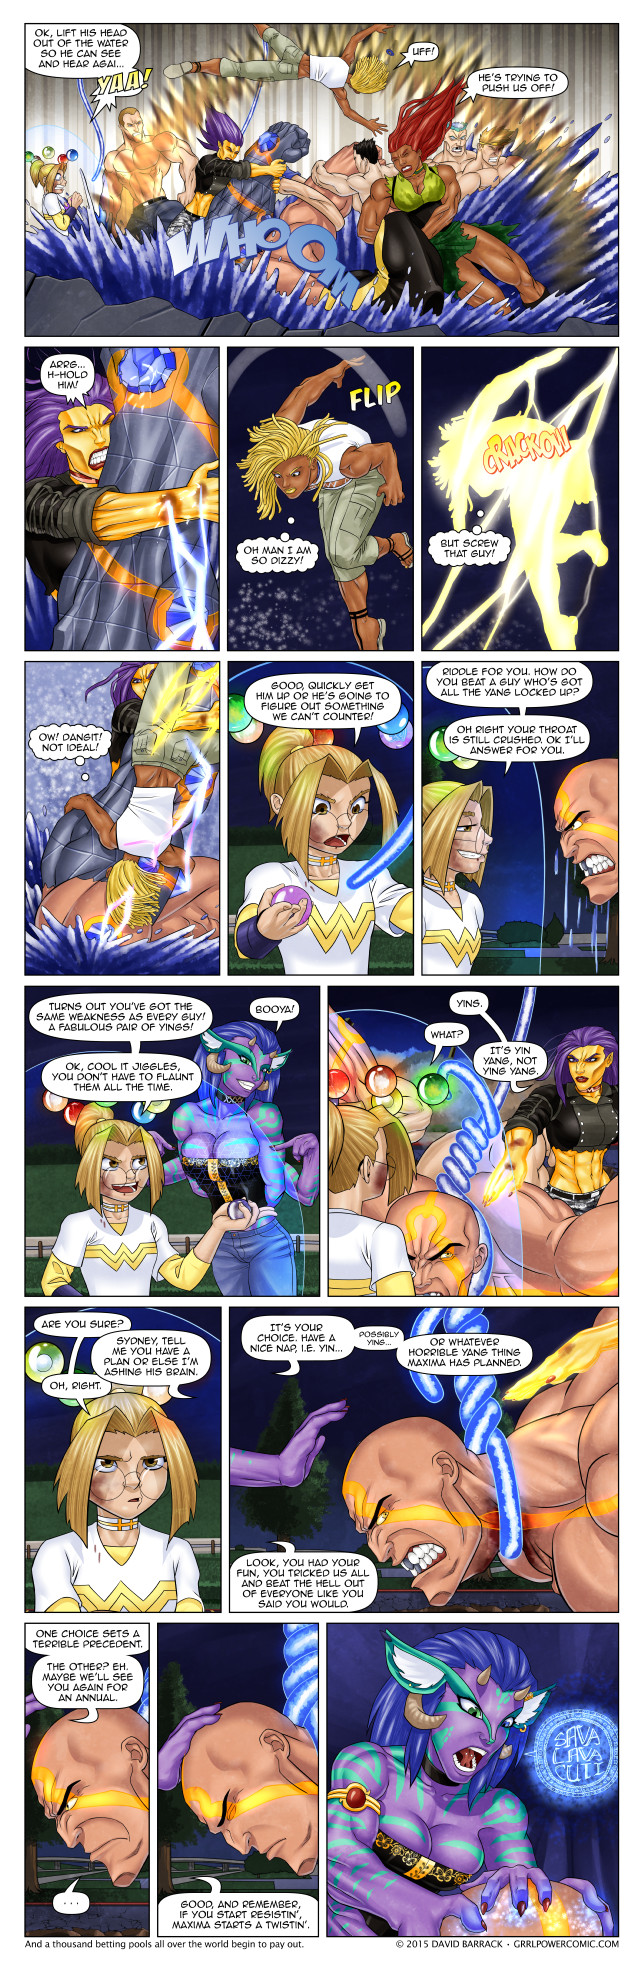 Grrl Power #286 – Aaaand scene